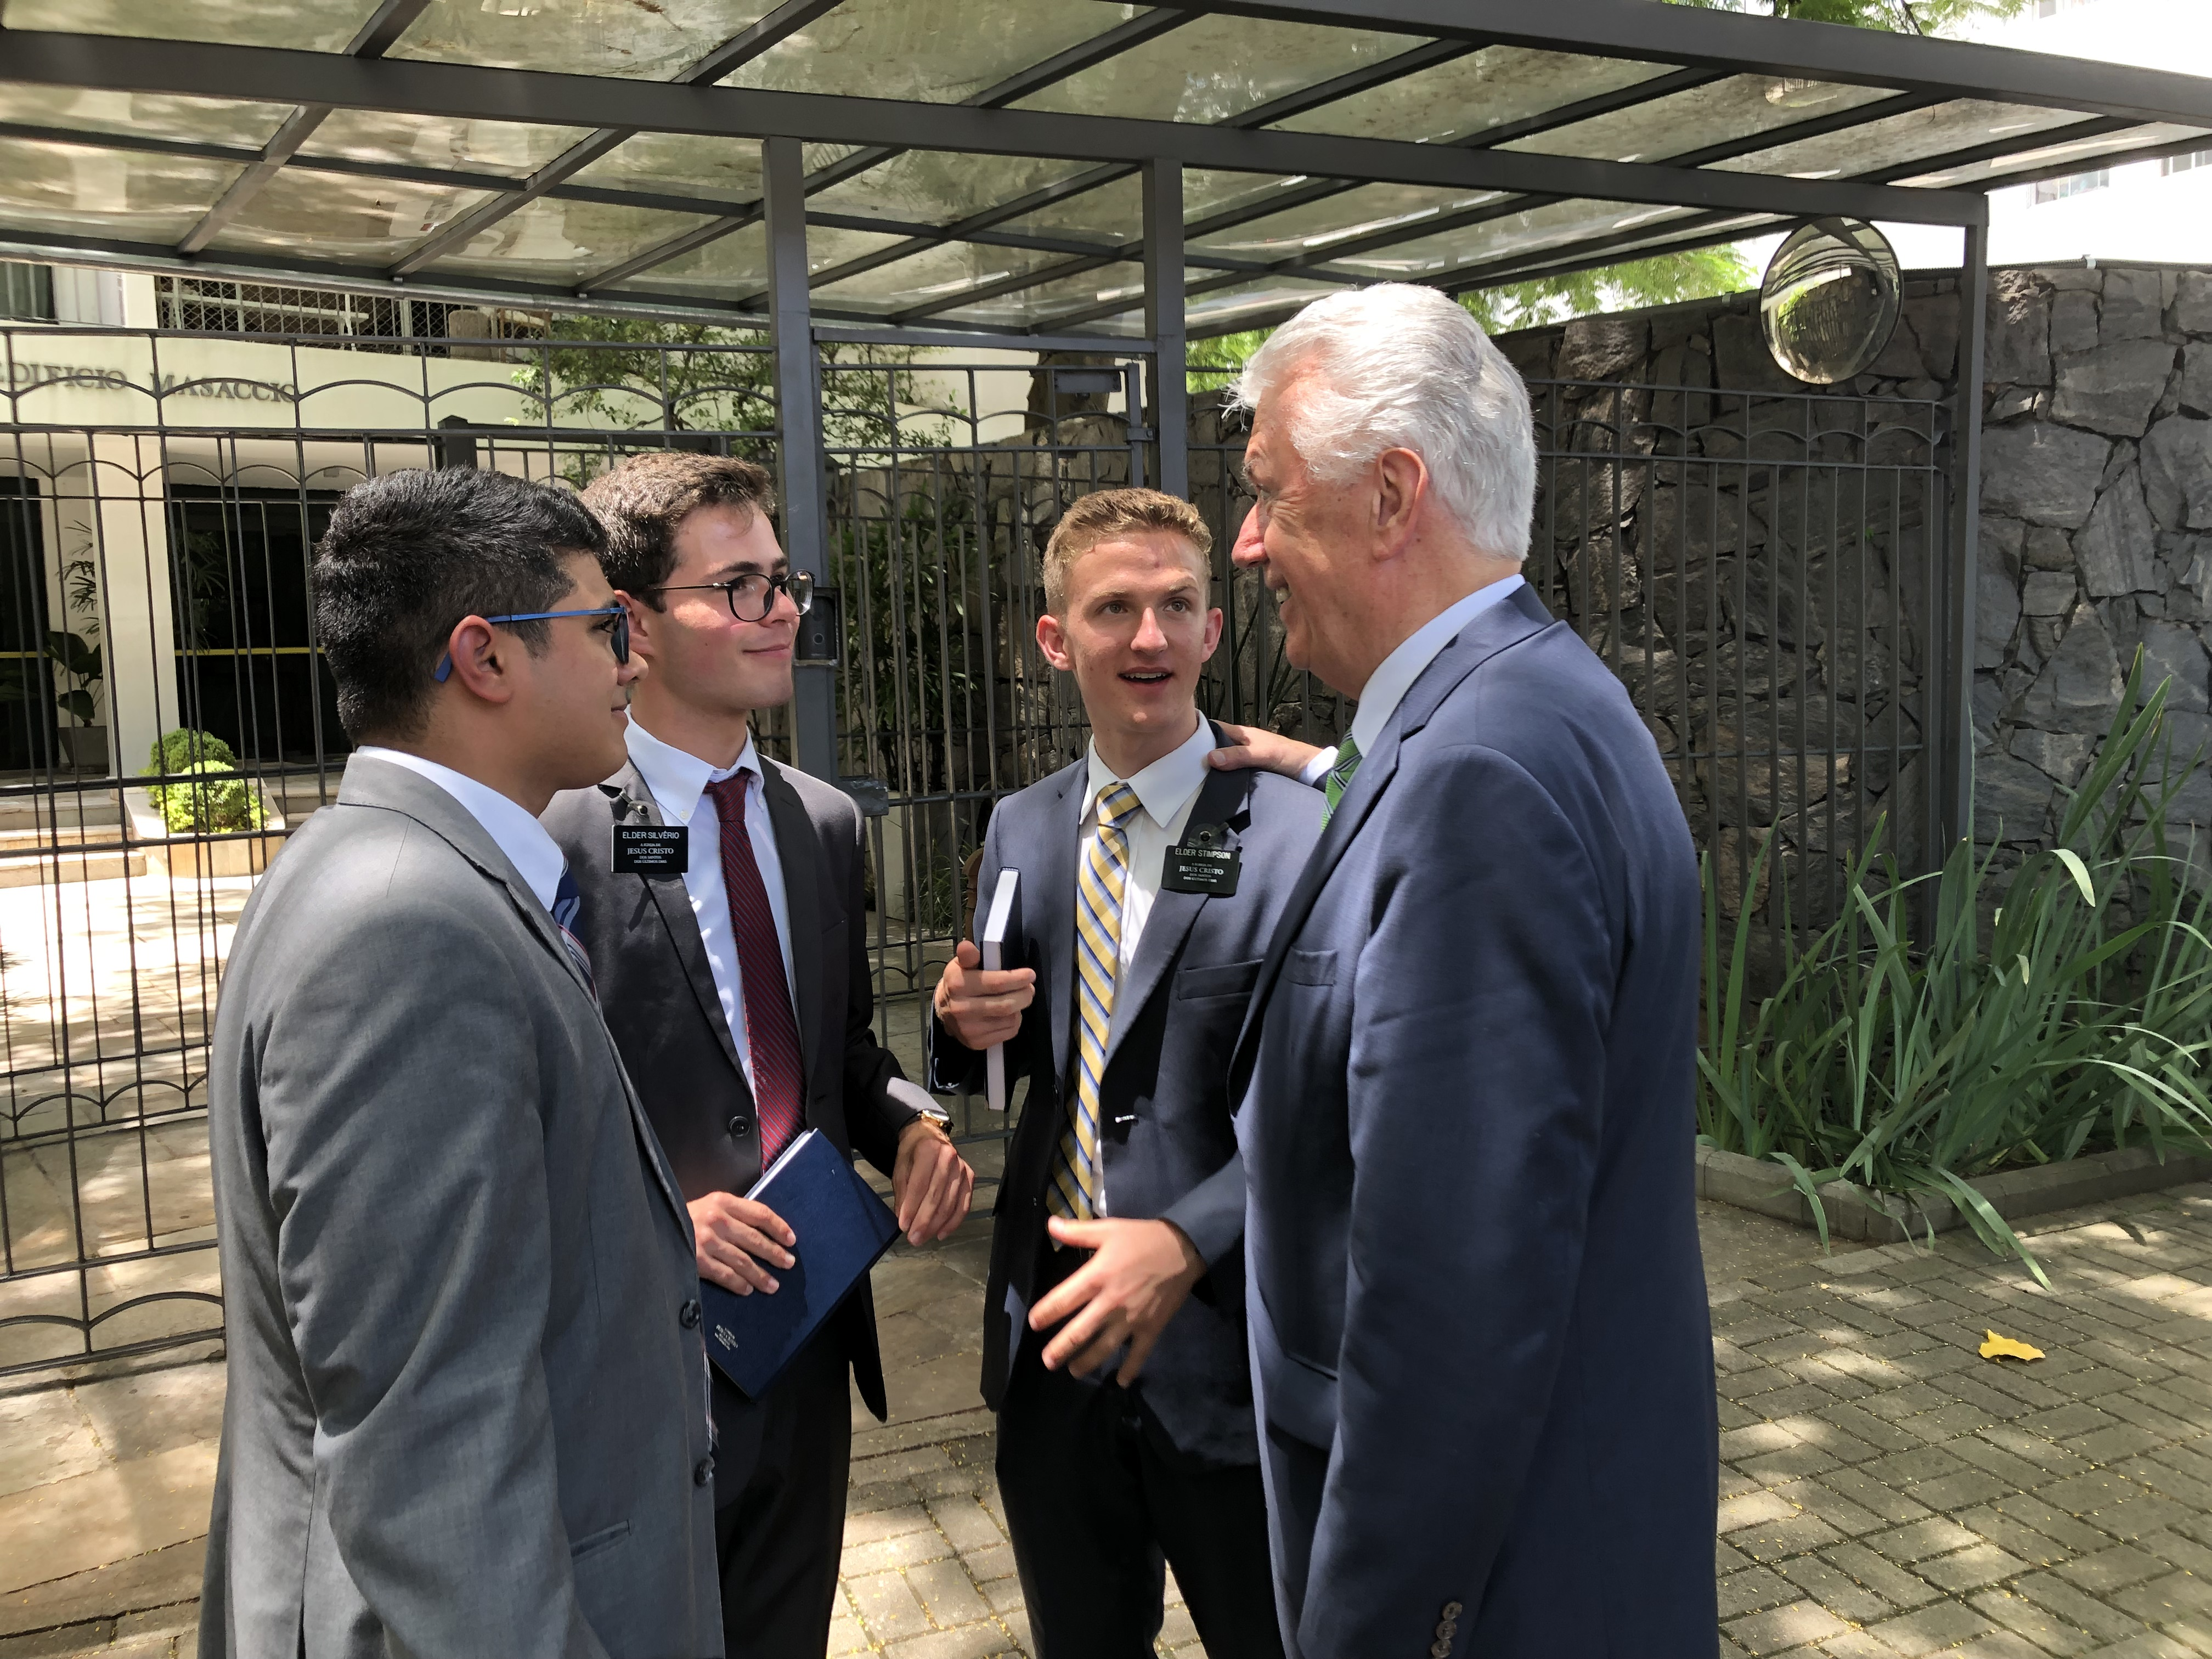 Elders Gabriel Luiz Rodriguez Silvério, Leonário Lima Pereira and Brennan Lance Stimpson of the Brazil Sao Paulo West Mission visit with Elder Dieter F. Uchtdorf of the Quorum of the Twelve Apostles as they prepare to go out teaching together in Sao Paulo in February 2019.